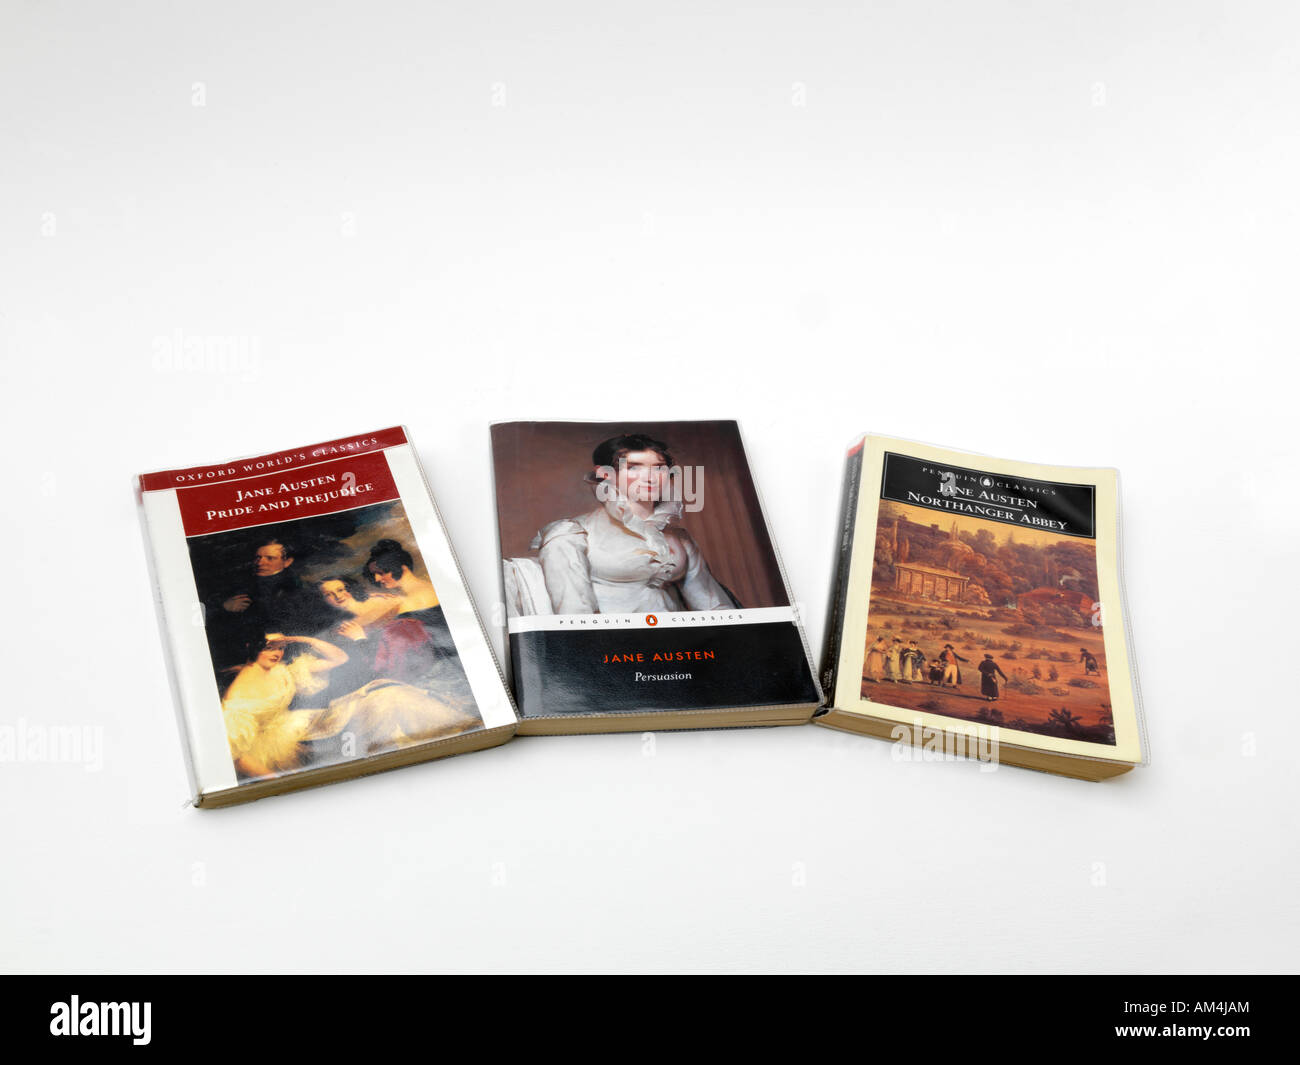 Three Novels by Jane Austin Pride and Prejudice Northanger Abbey and Persuasion - Stock Image